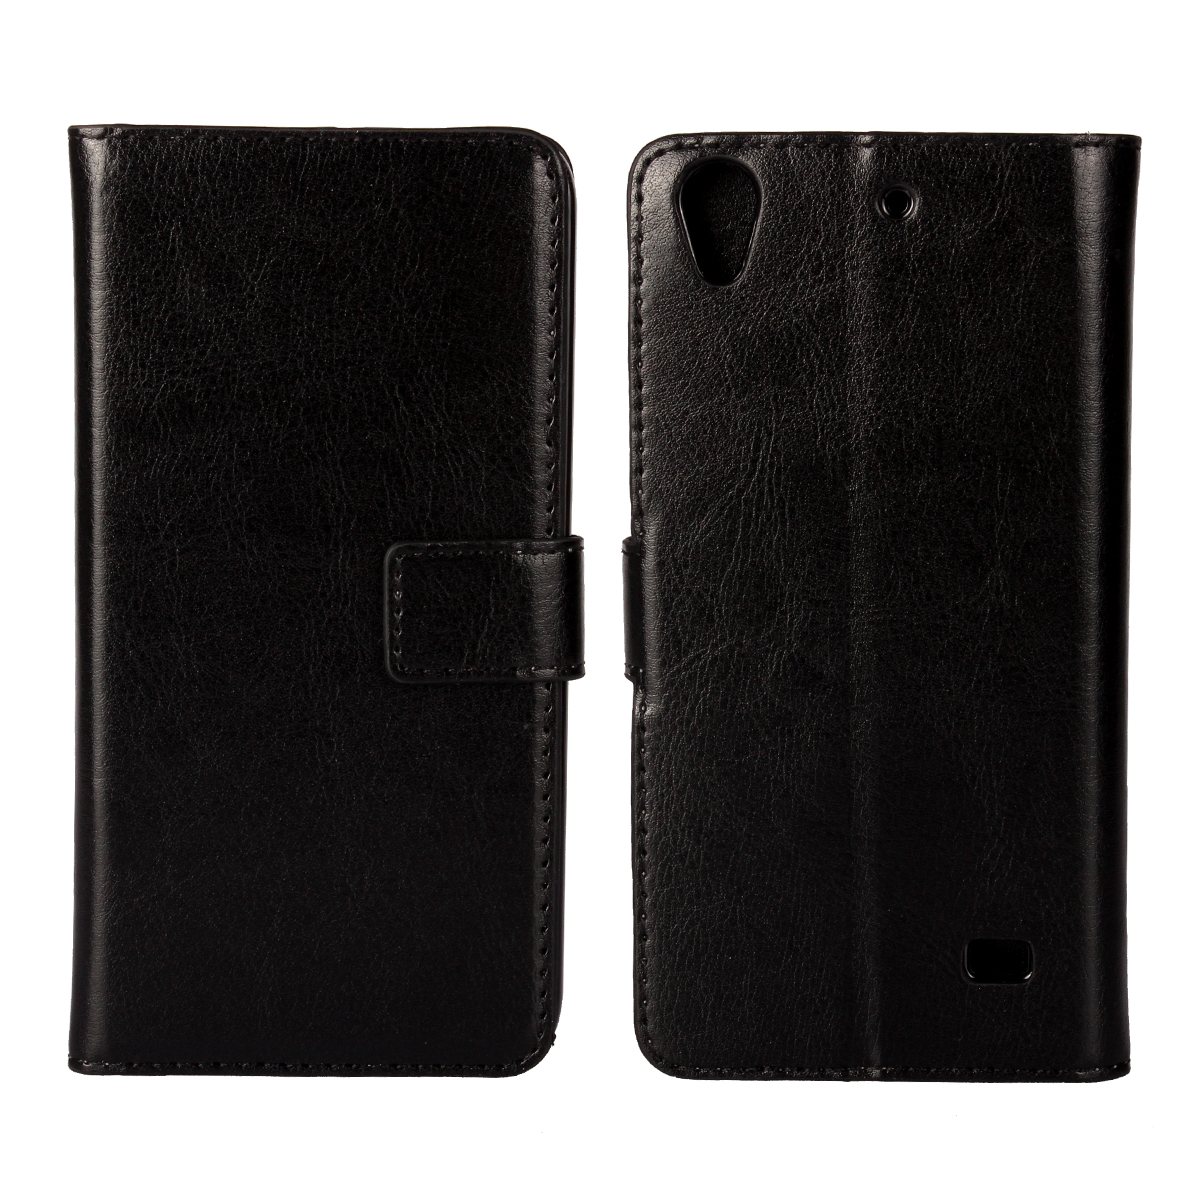 For Huawei Ascend G620s Cover Case Wallet Leather Book Purse Mobile Phone Shell Pouch Bag Fundas Case Cover For Huawei G620s(China (Mainland))